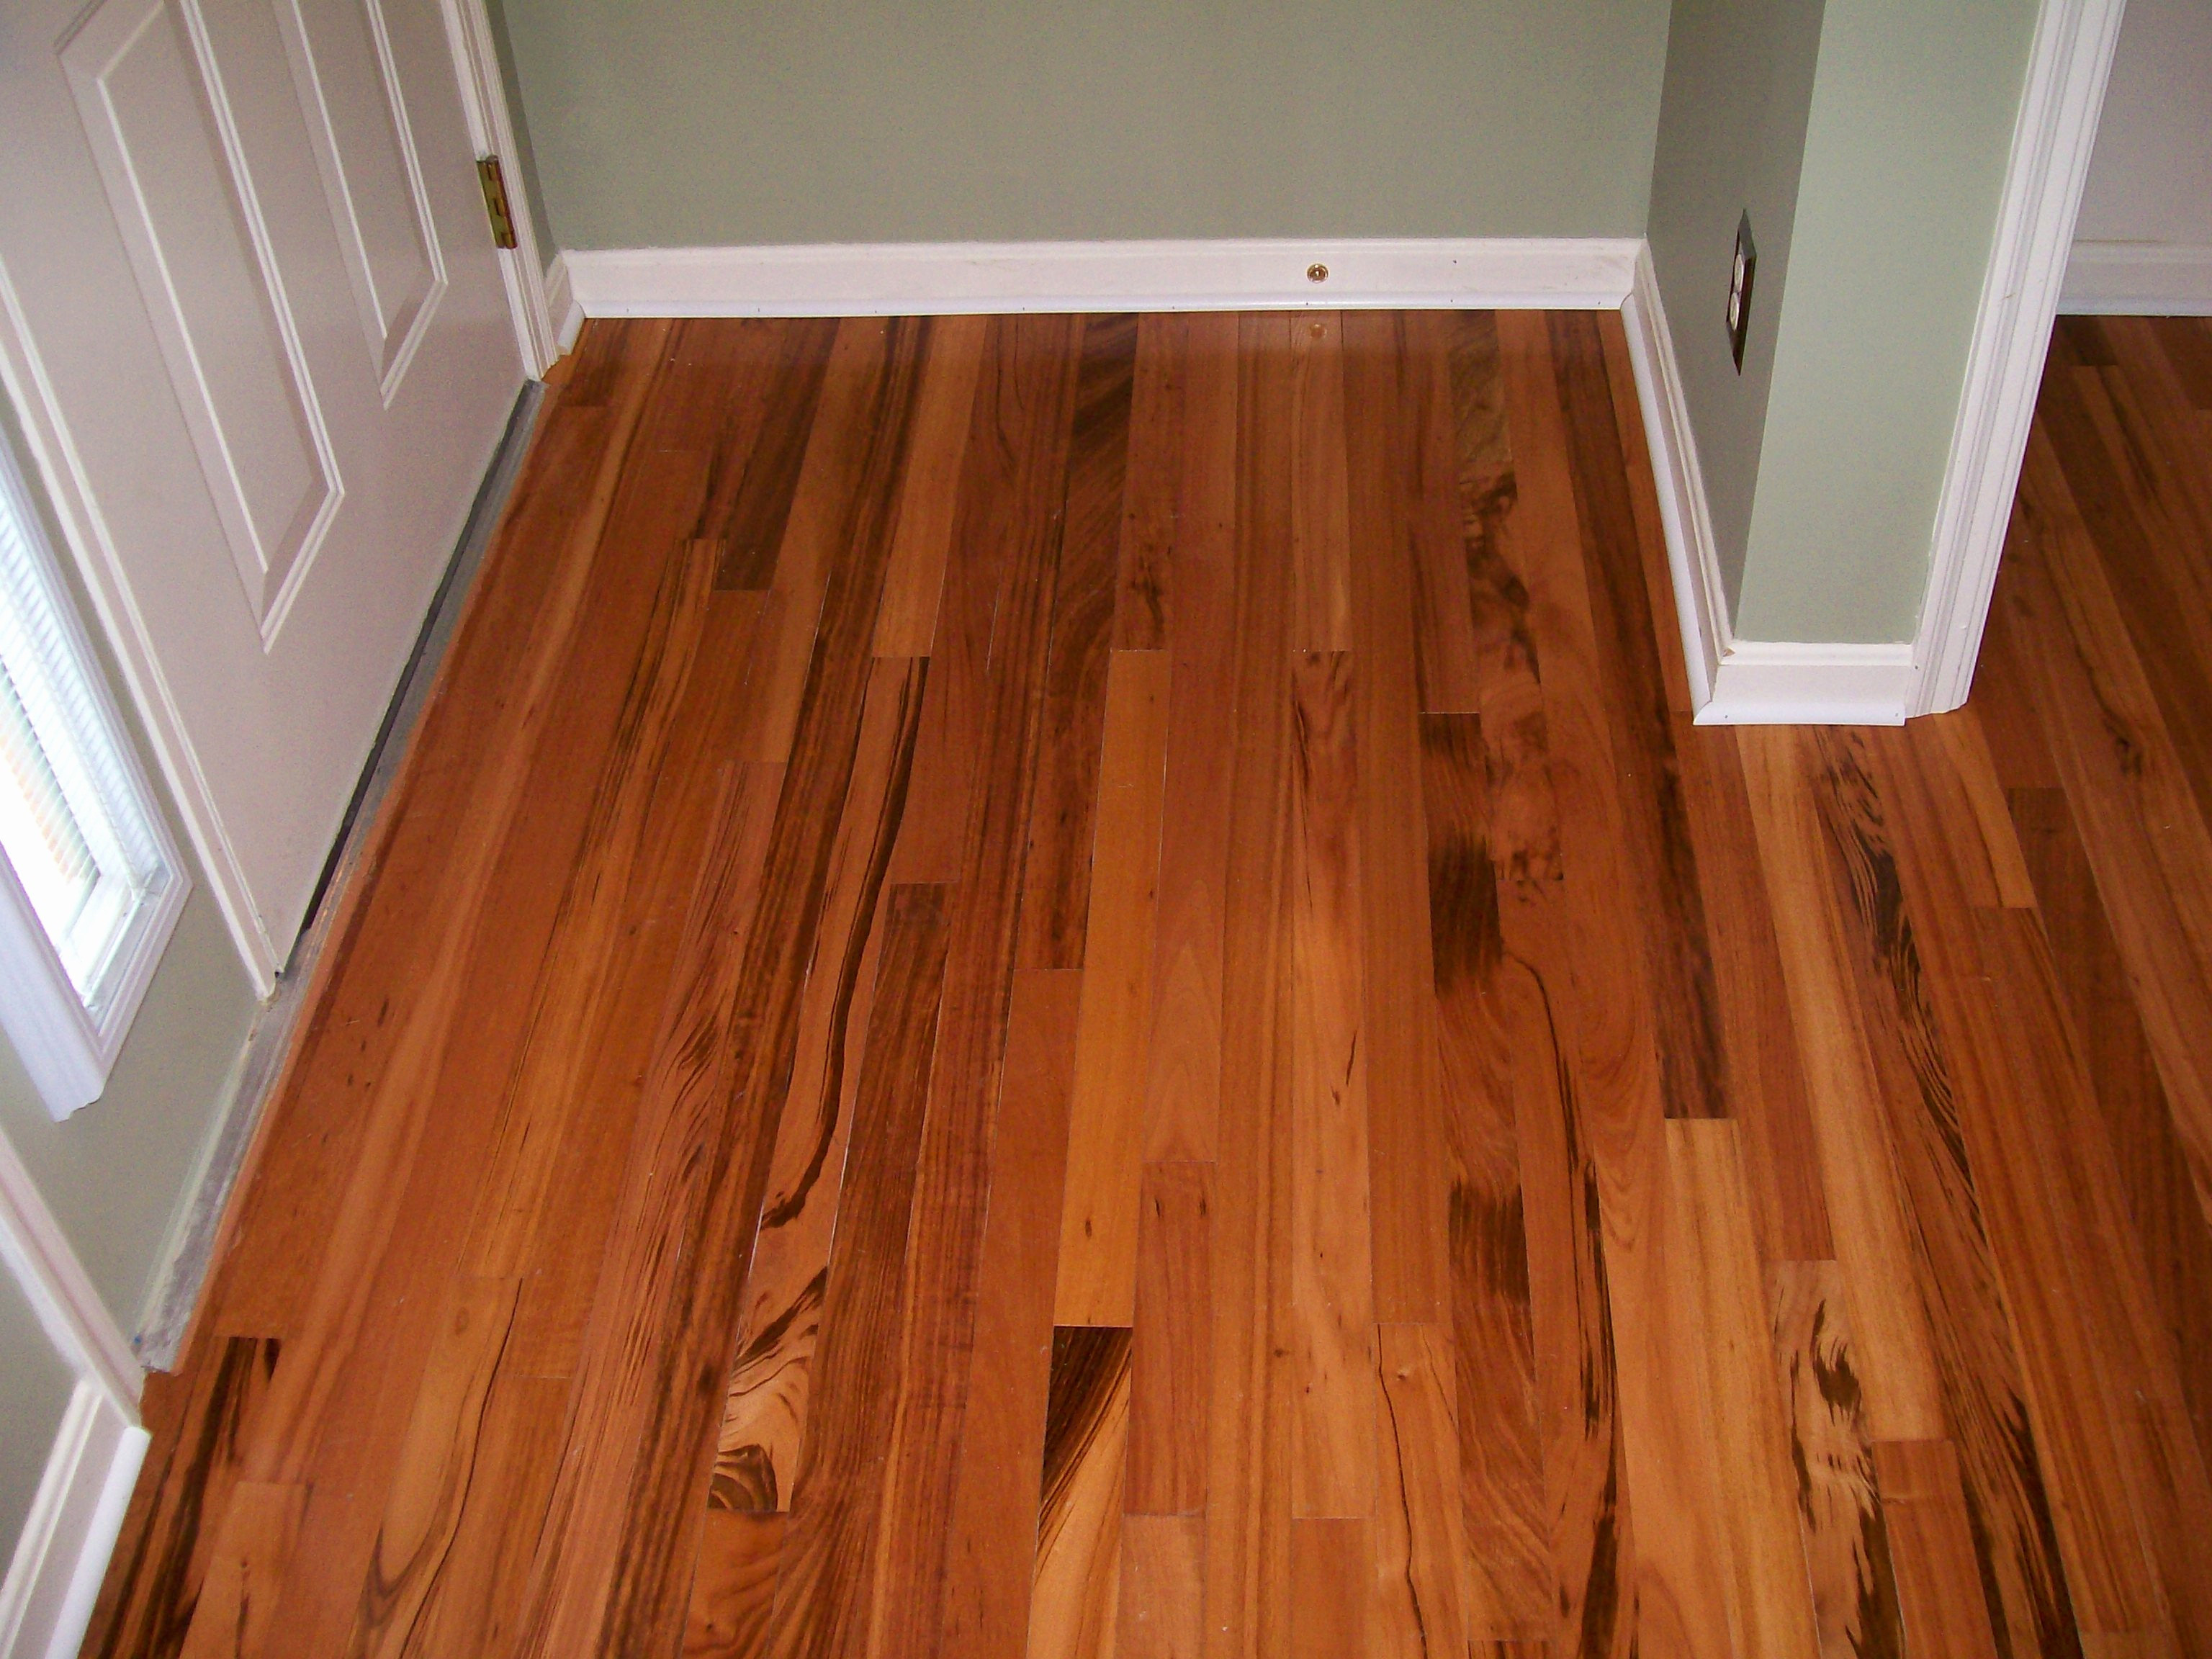 Hardwood Flooring Cost Of 17 New Cost Of Hardwood Floor Installation Pics Dizpos Com In Cost Of Hardwood Floor Installation New 50 Fresh Estimated Cost Installing Hardwood Floors 50 Photos Of